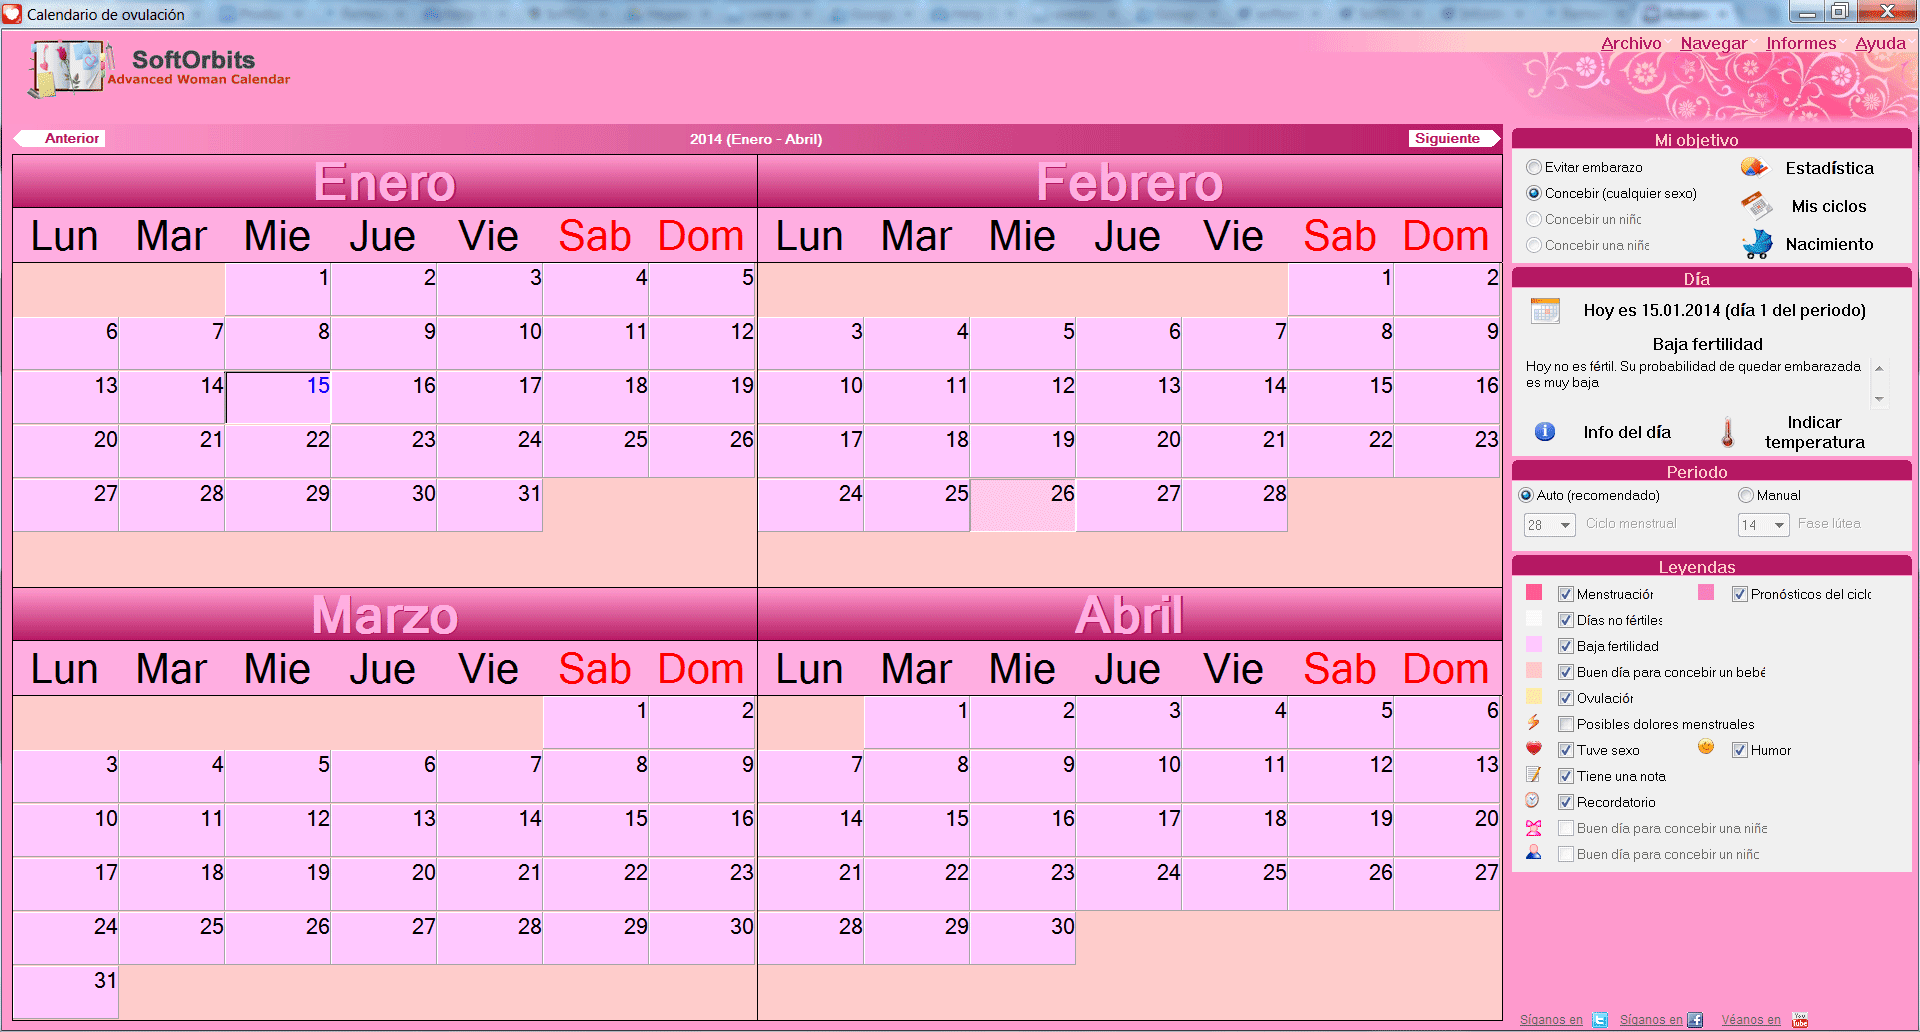 Calendario de ovulación